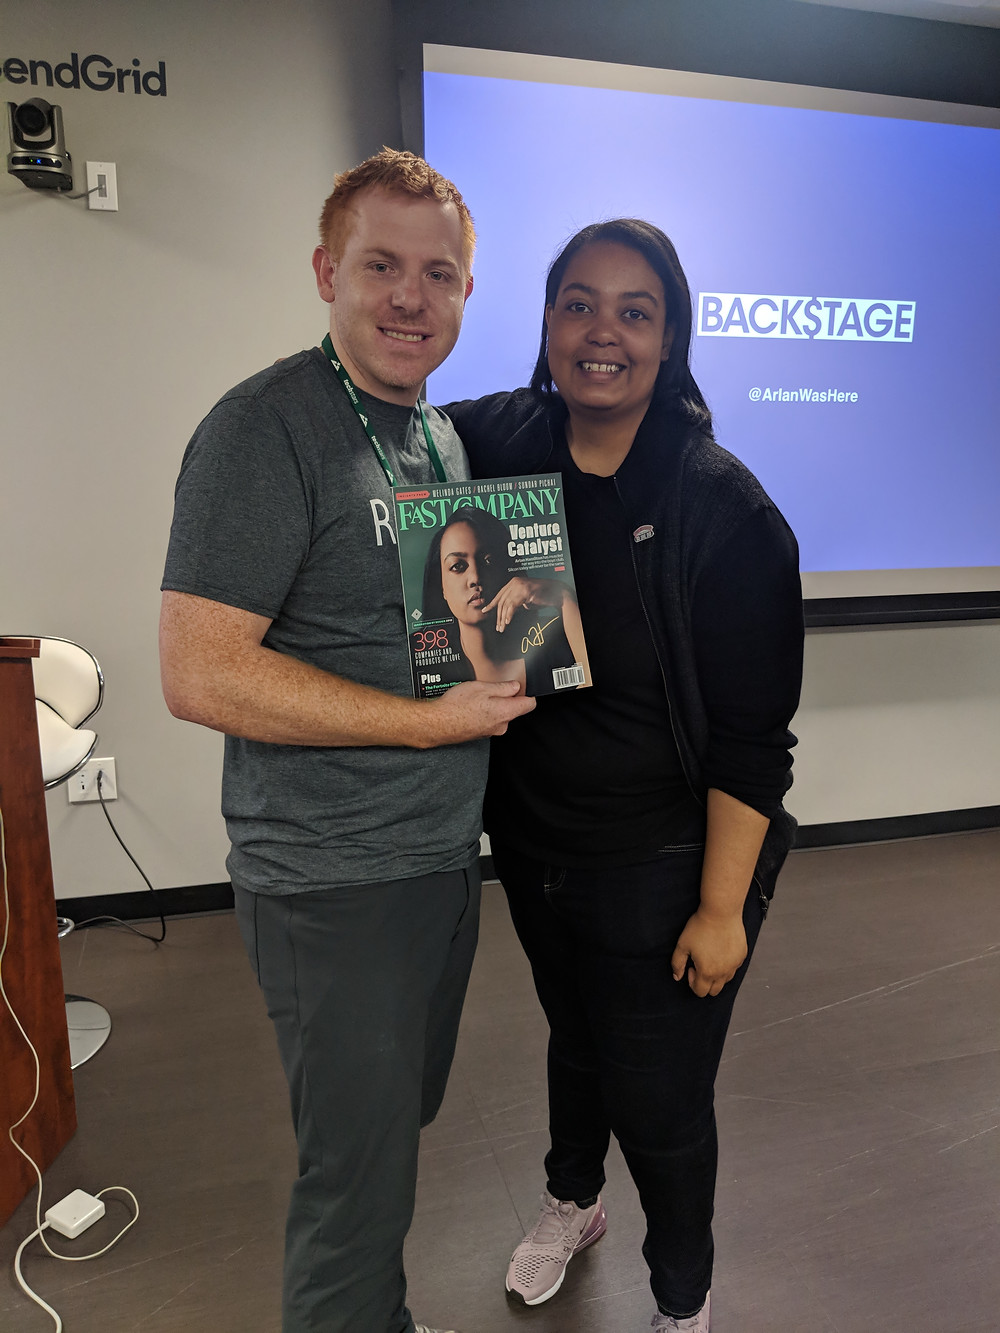 Meeting the founder of Backstage Capital Arlan Hamilton